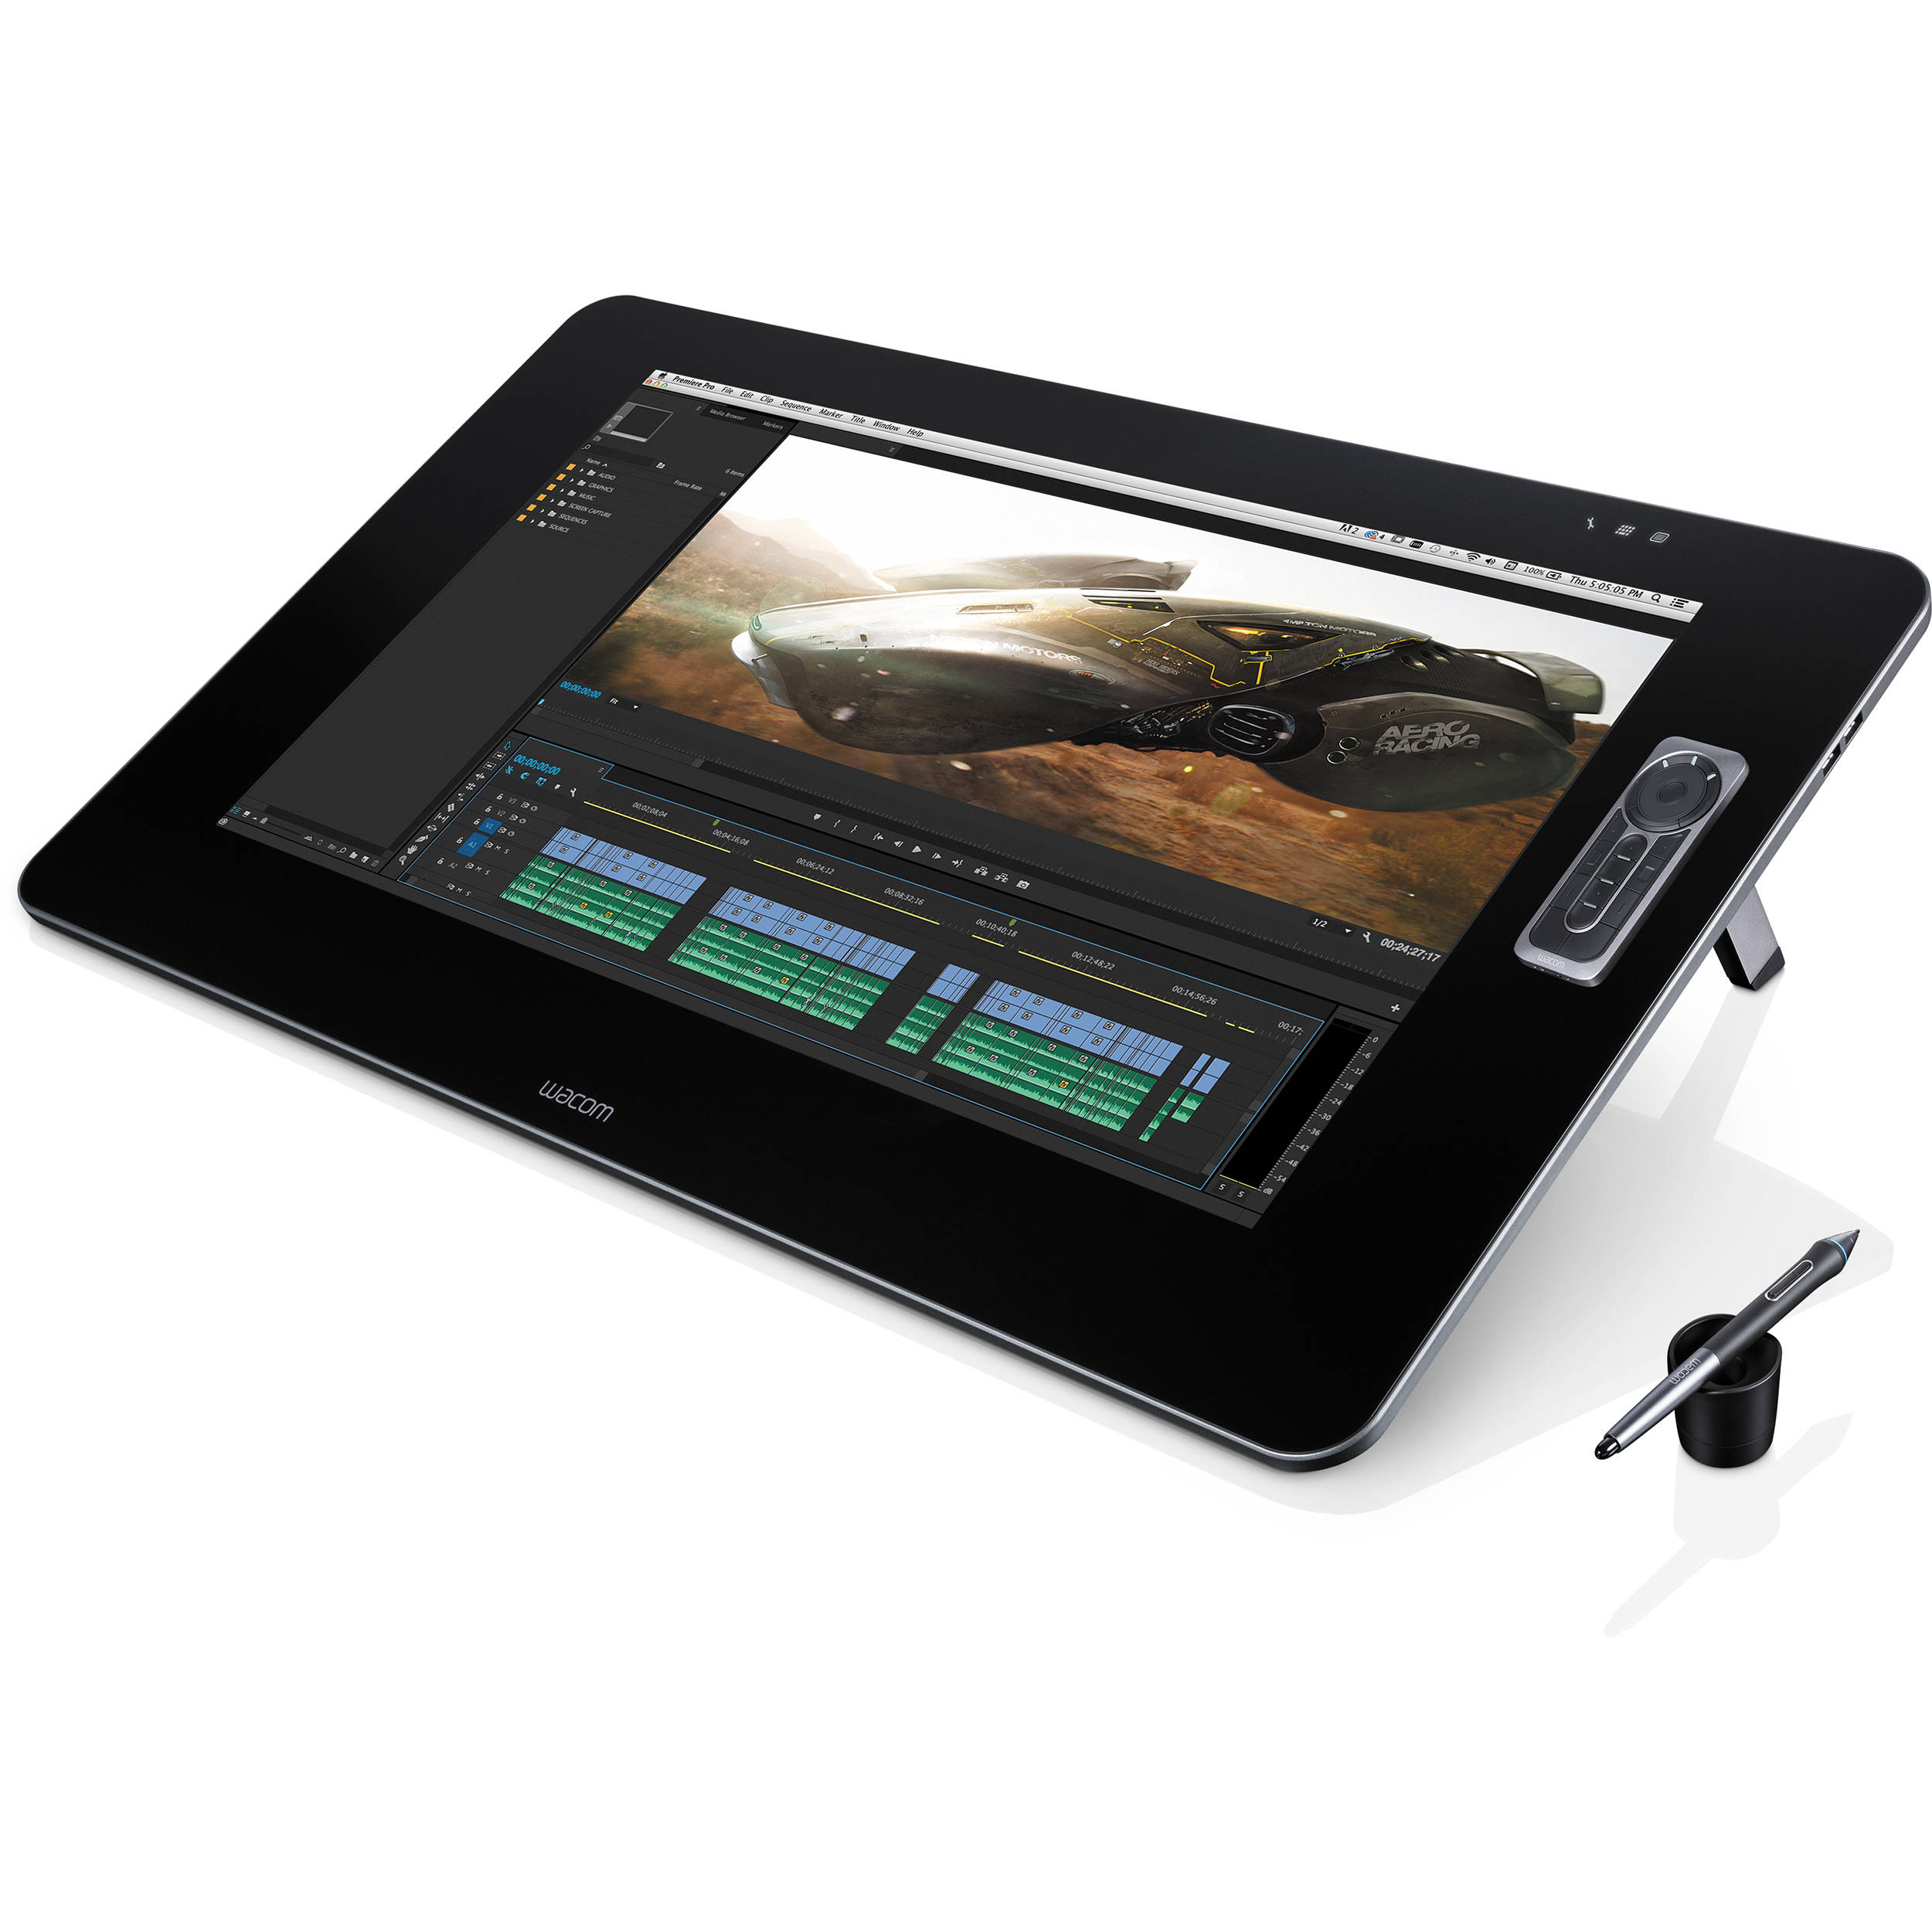 Image of Wacom Cintiq Tablet